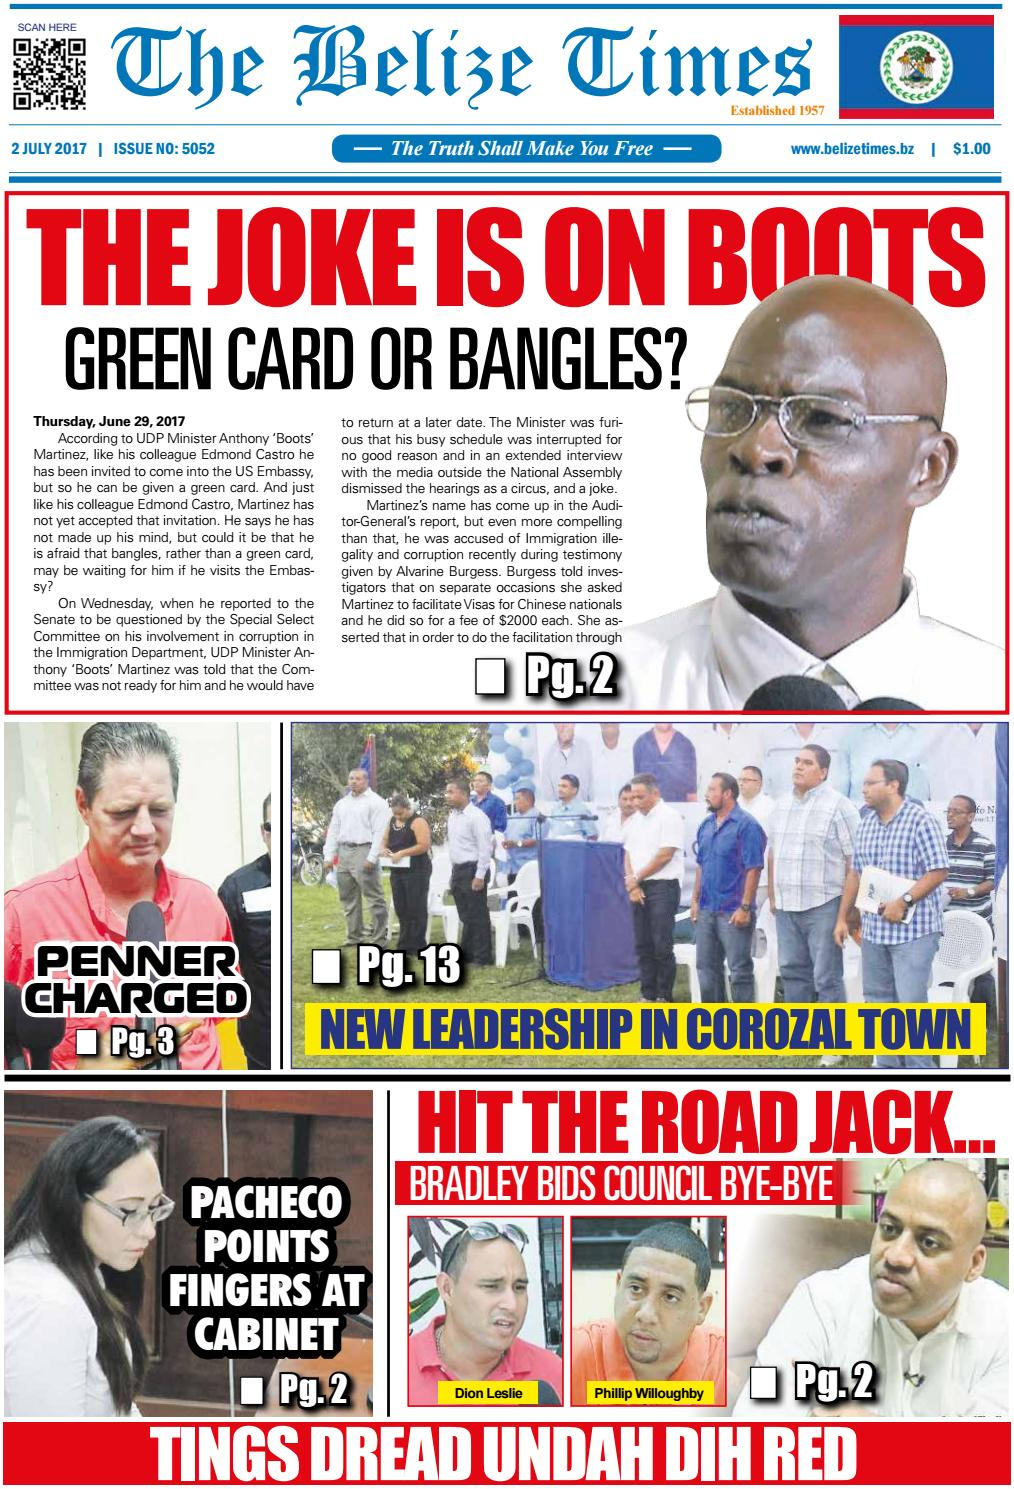 Belize Times July 2 2017 By Belize Times Press Issuu Love 94, anwar zayden passed away may 19, 2020. belize times july 2 2017 by belize